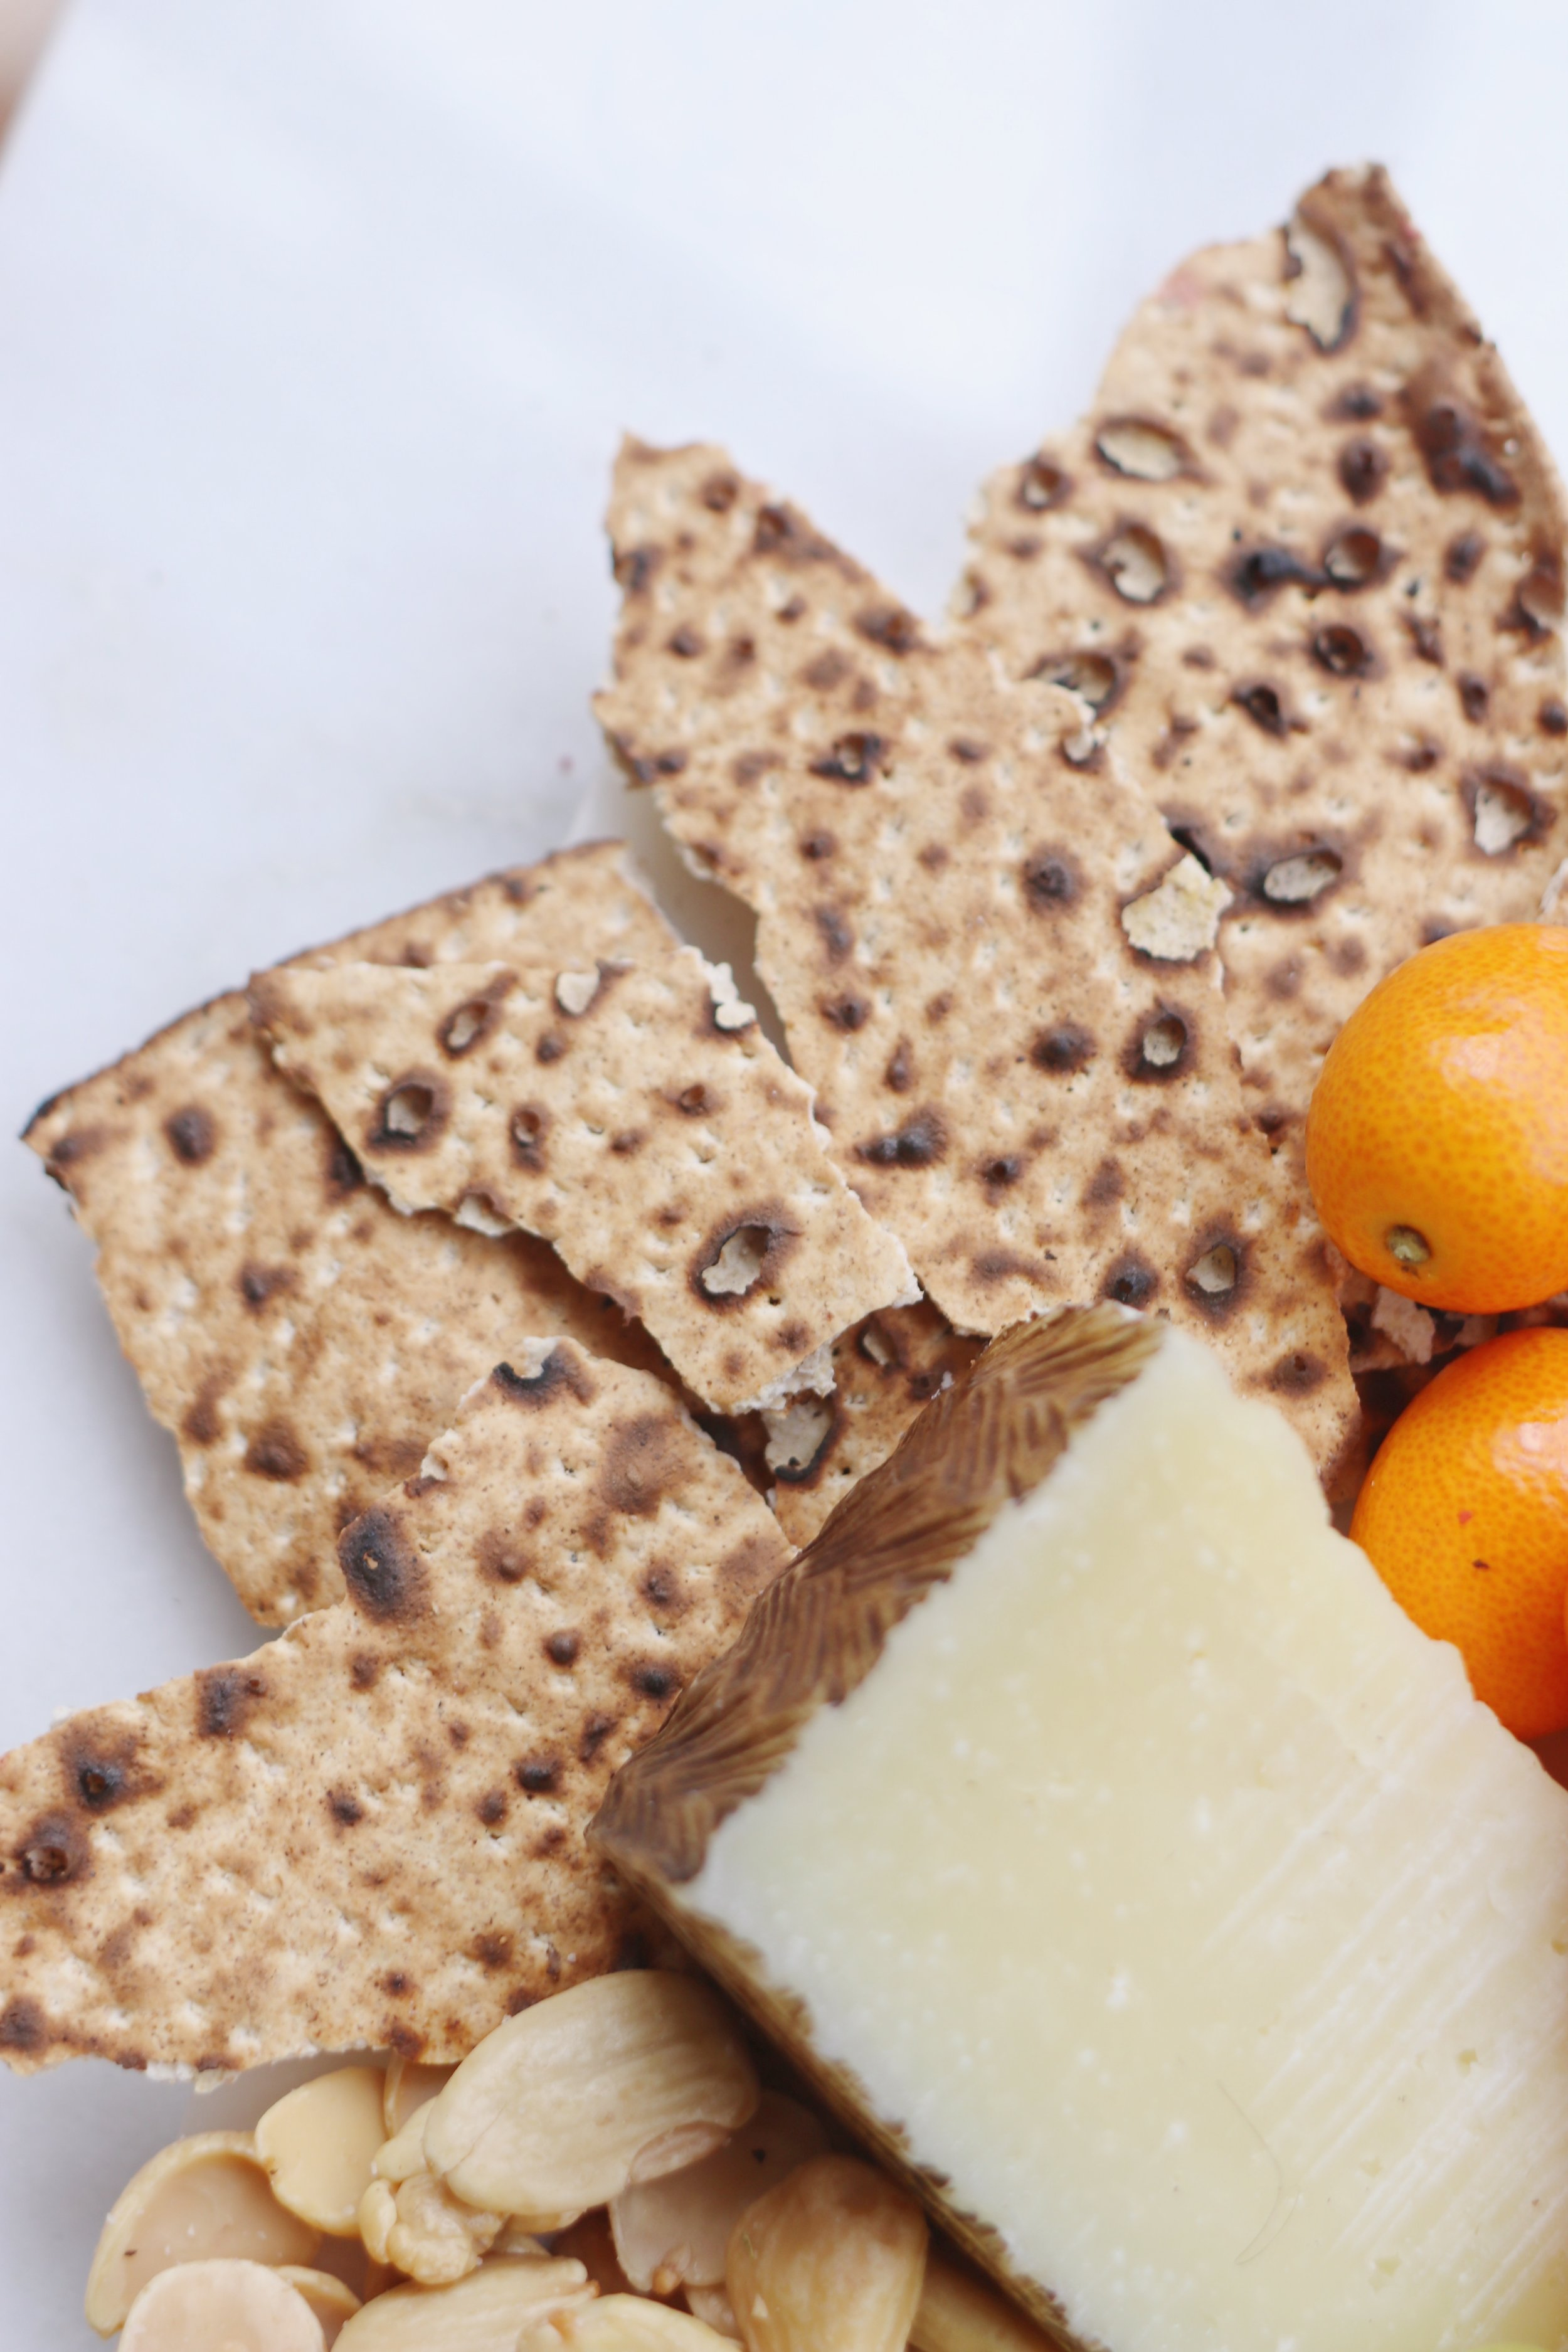 passover-appetizers-matza-cheese-board-8